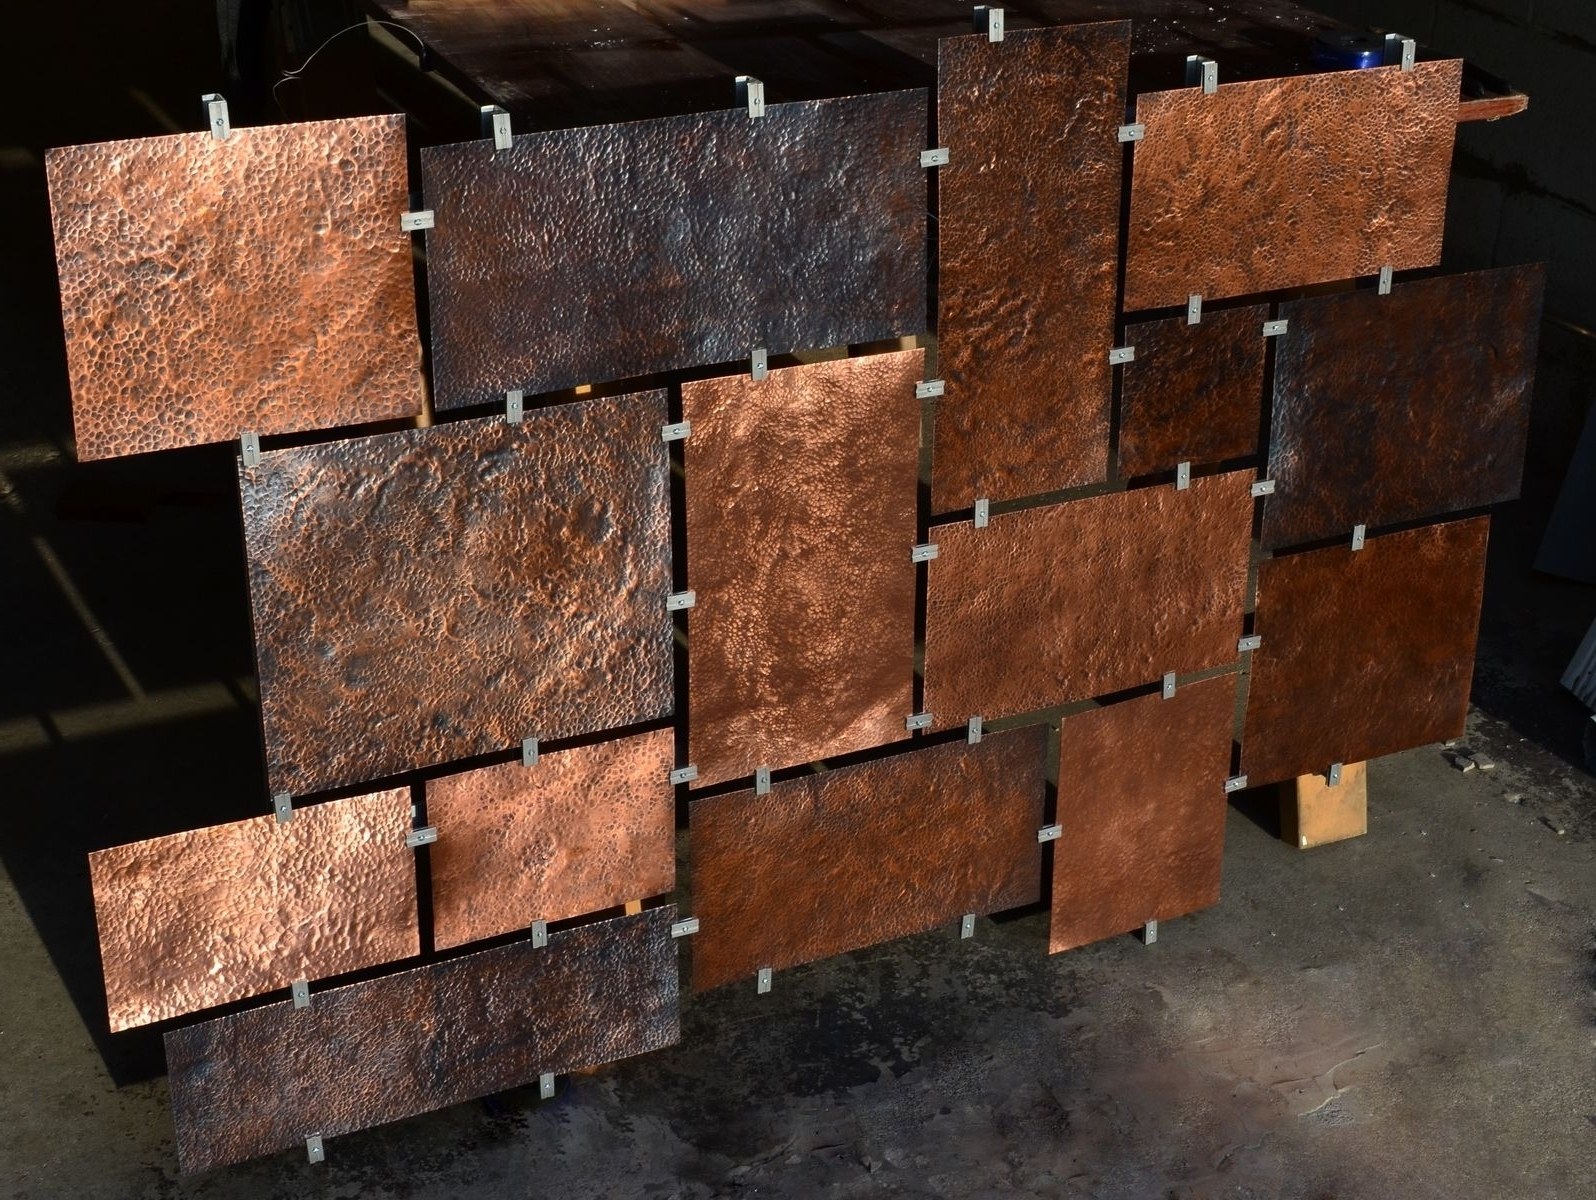 Widely Used Hammered Metal Wall Art Intended For Hand Made Custom Hammered Copper Wall Artfabitecture (View 14 of 15)